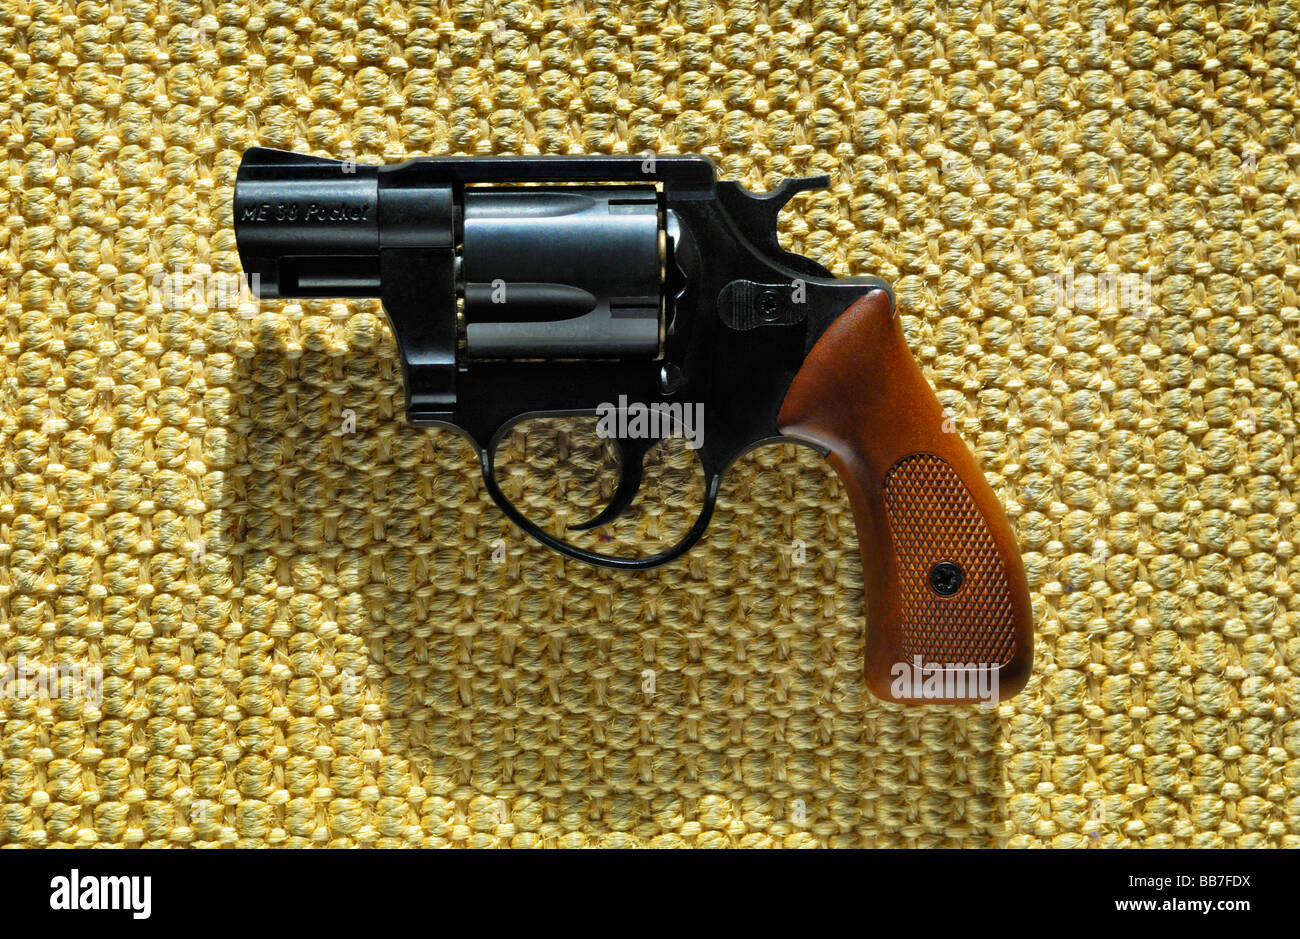 Alarm pistol Kal. 9 mm, Germany, Europe - Stock Image